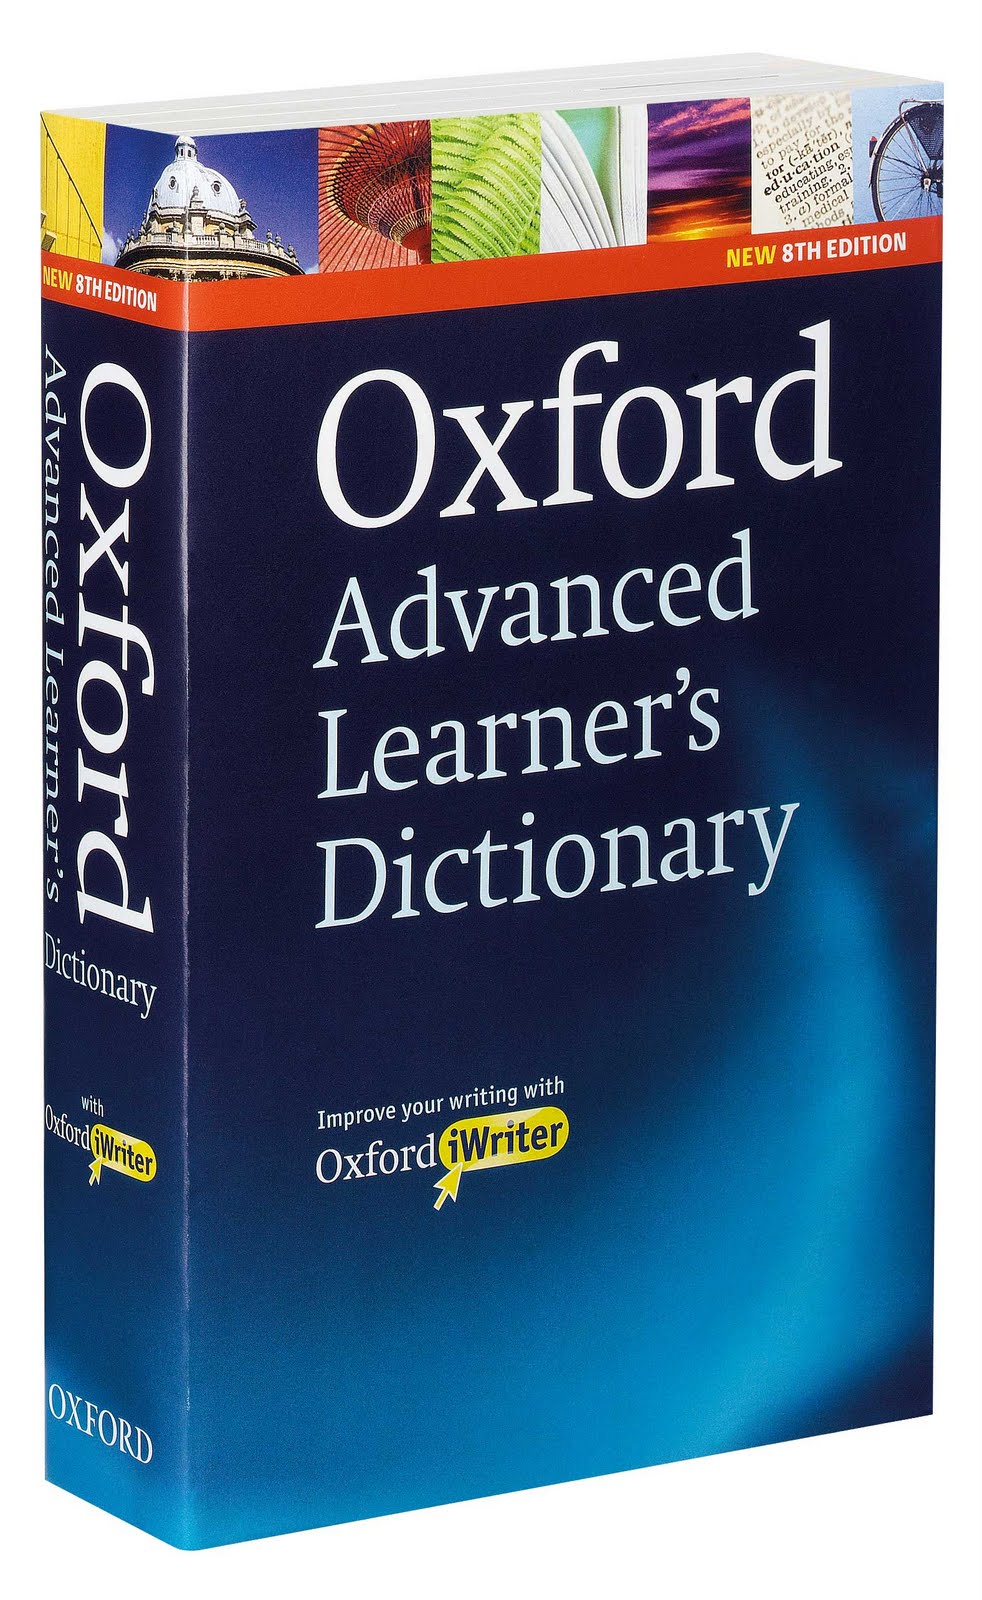 English In Italian: Oxford English Dictionary With Sound Pronunciation